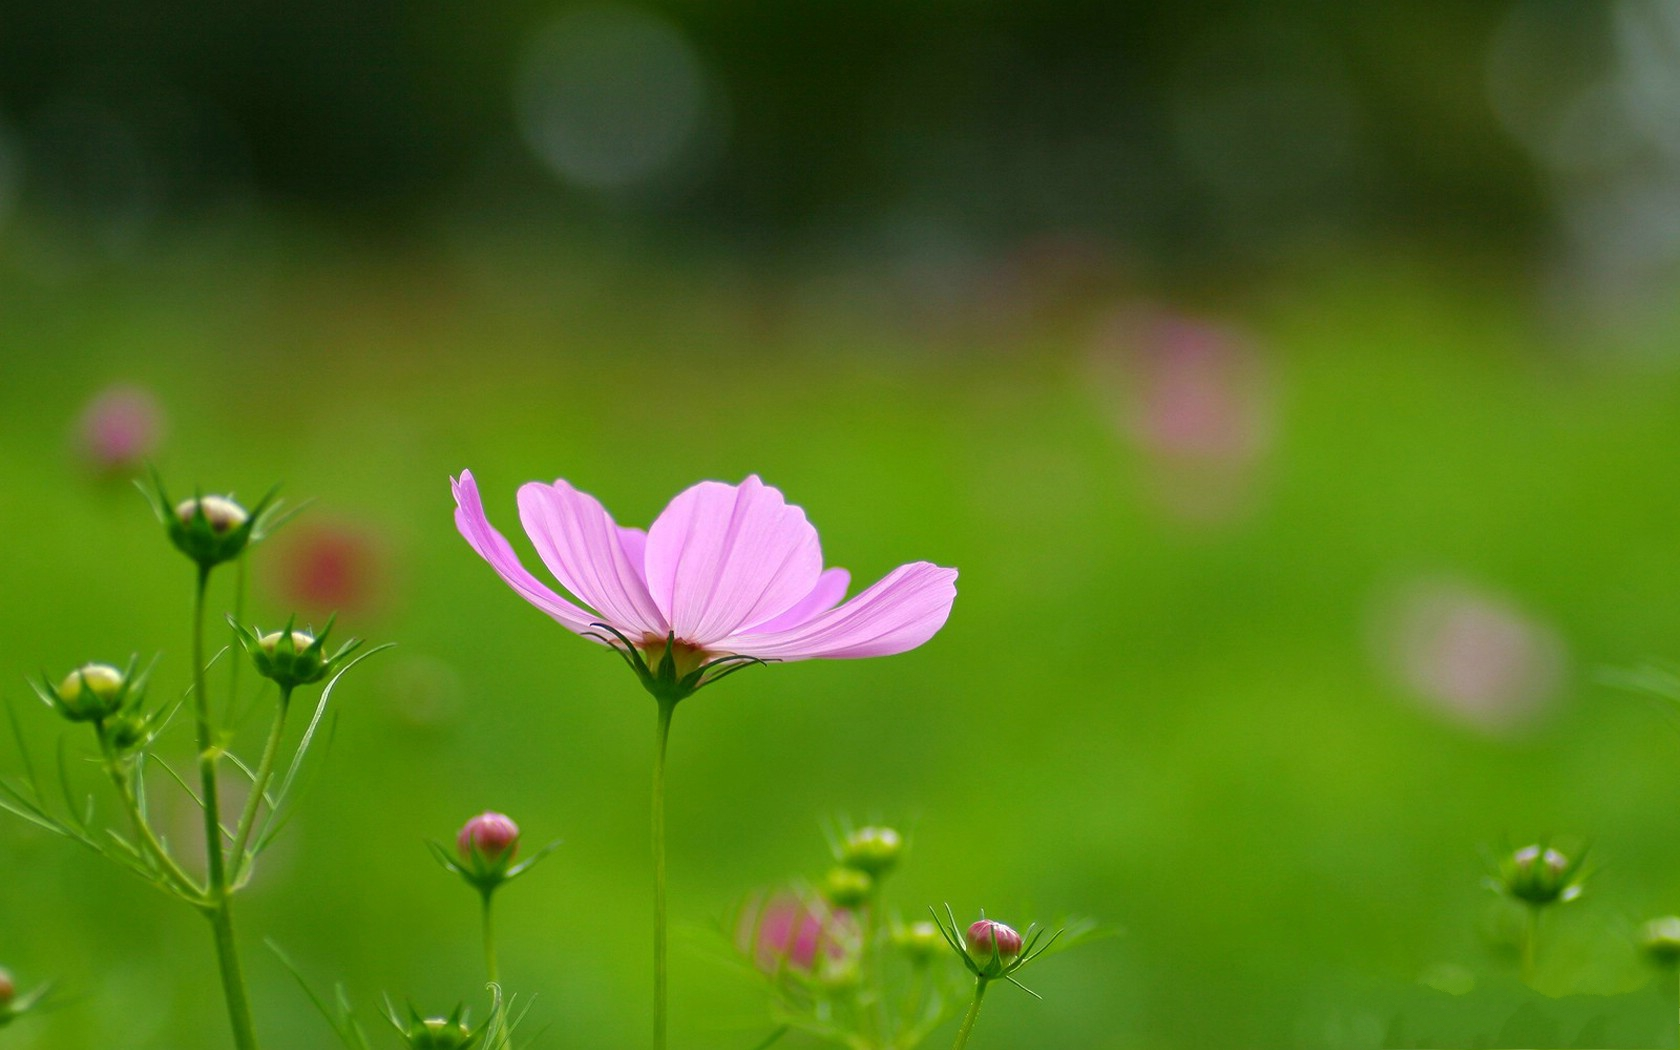 click to free download the wallpaper--Wild Flowers Photo, Cosmos Flower on Green Background, Impressive Scene 1680X1050 free wallpaper download